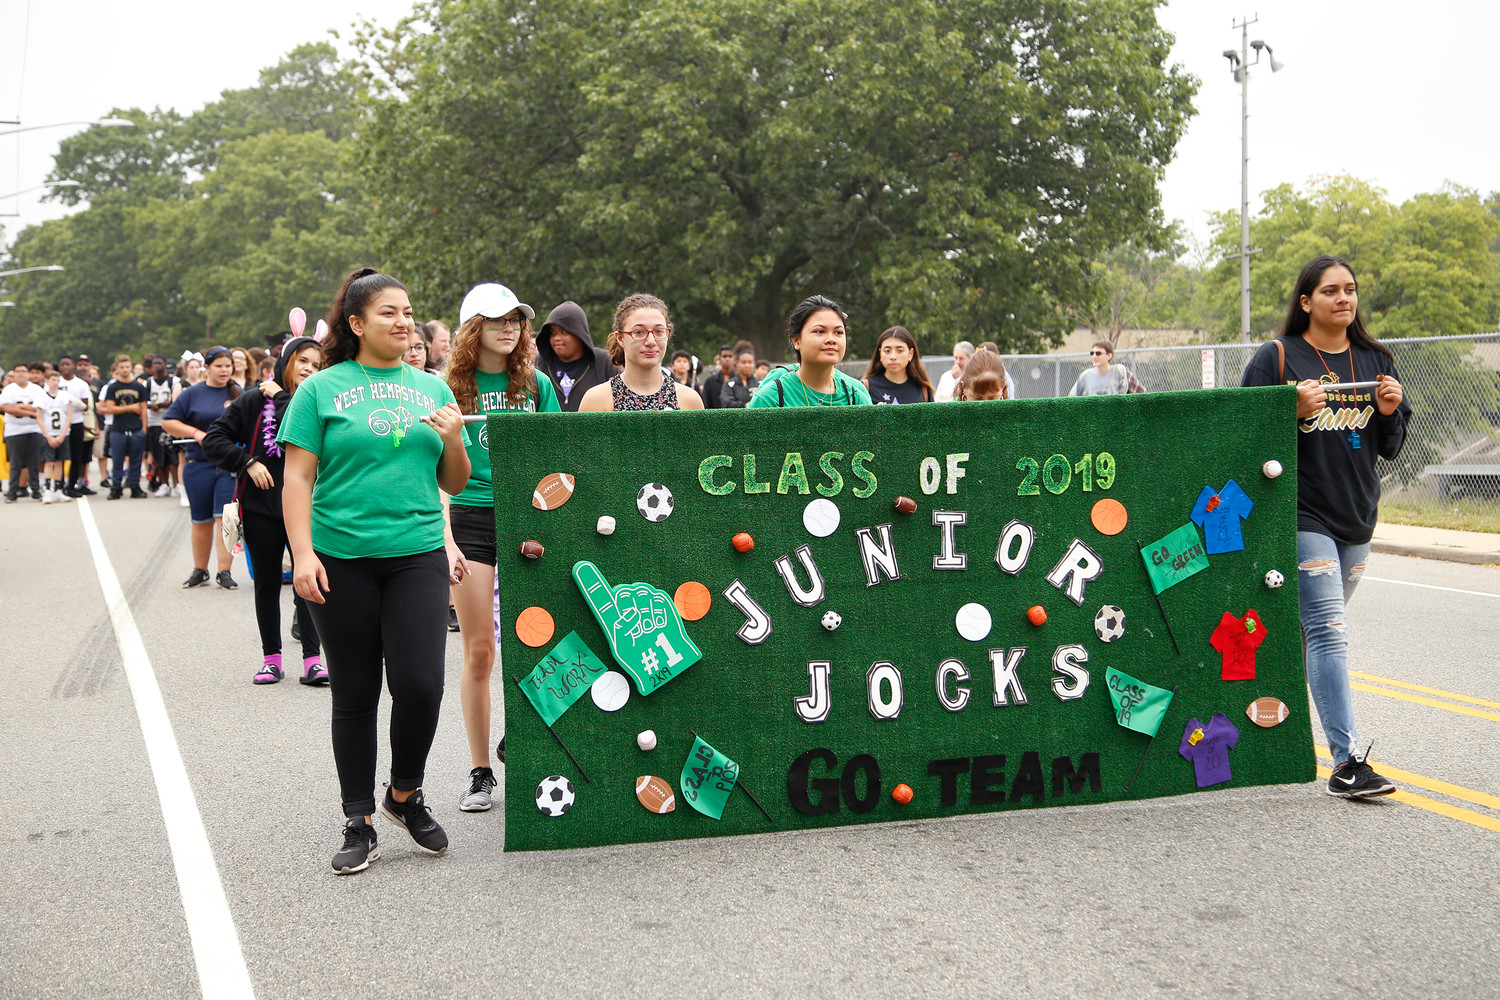 Junior Jocks donned bright green colors as they marched on.